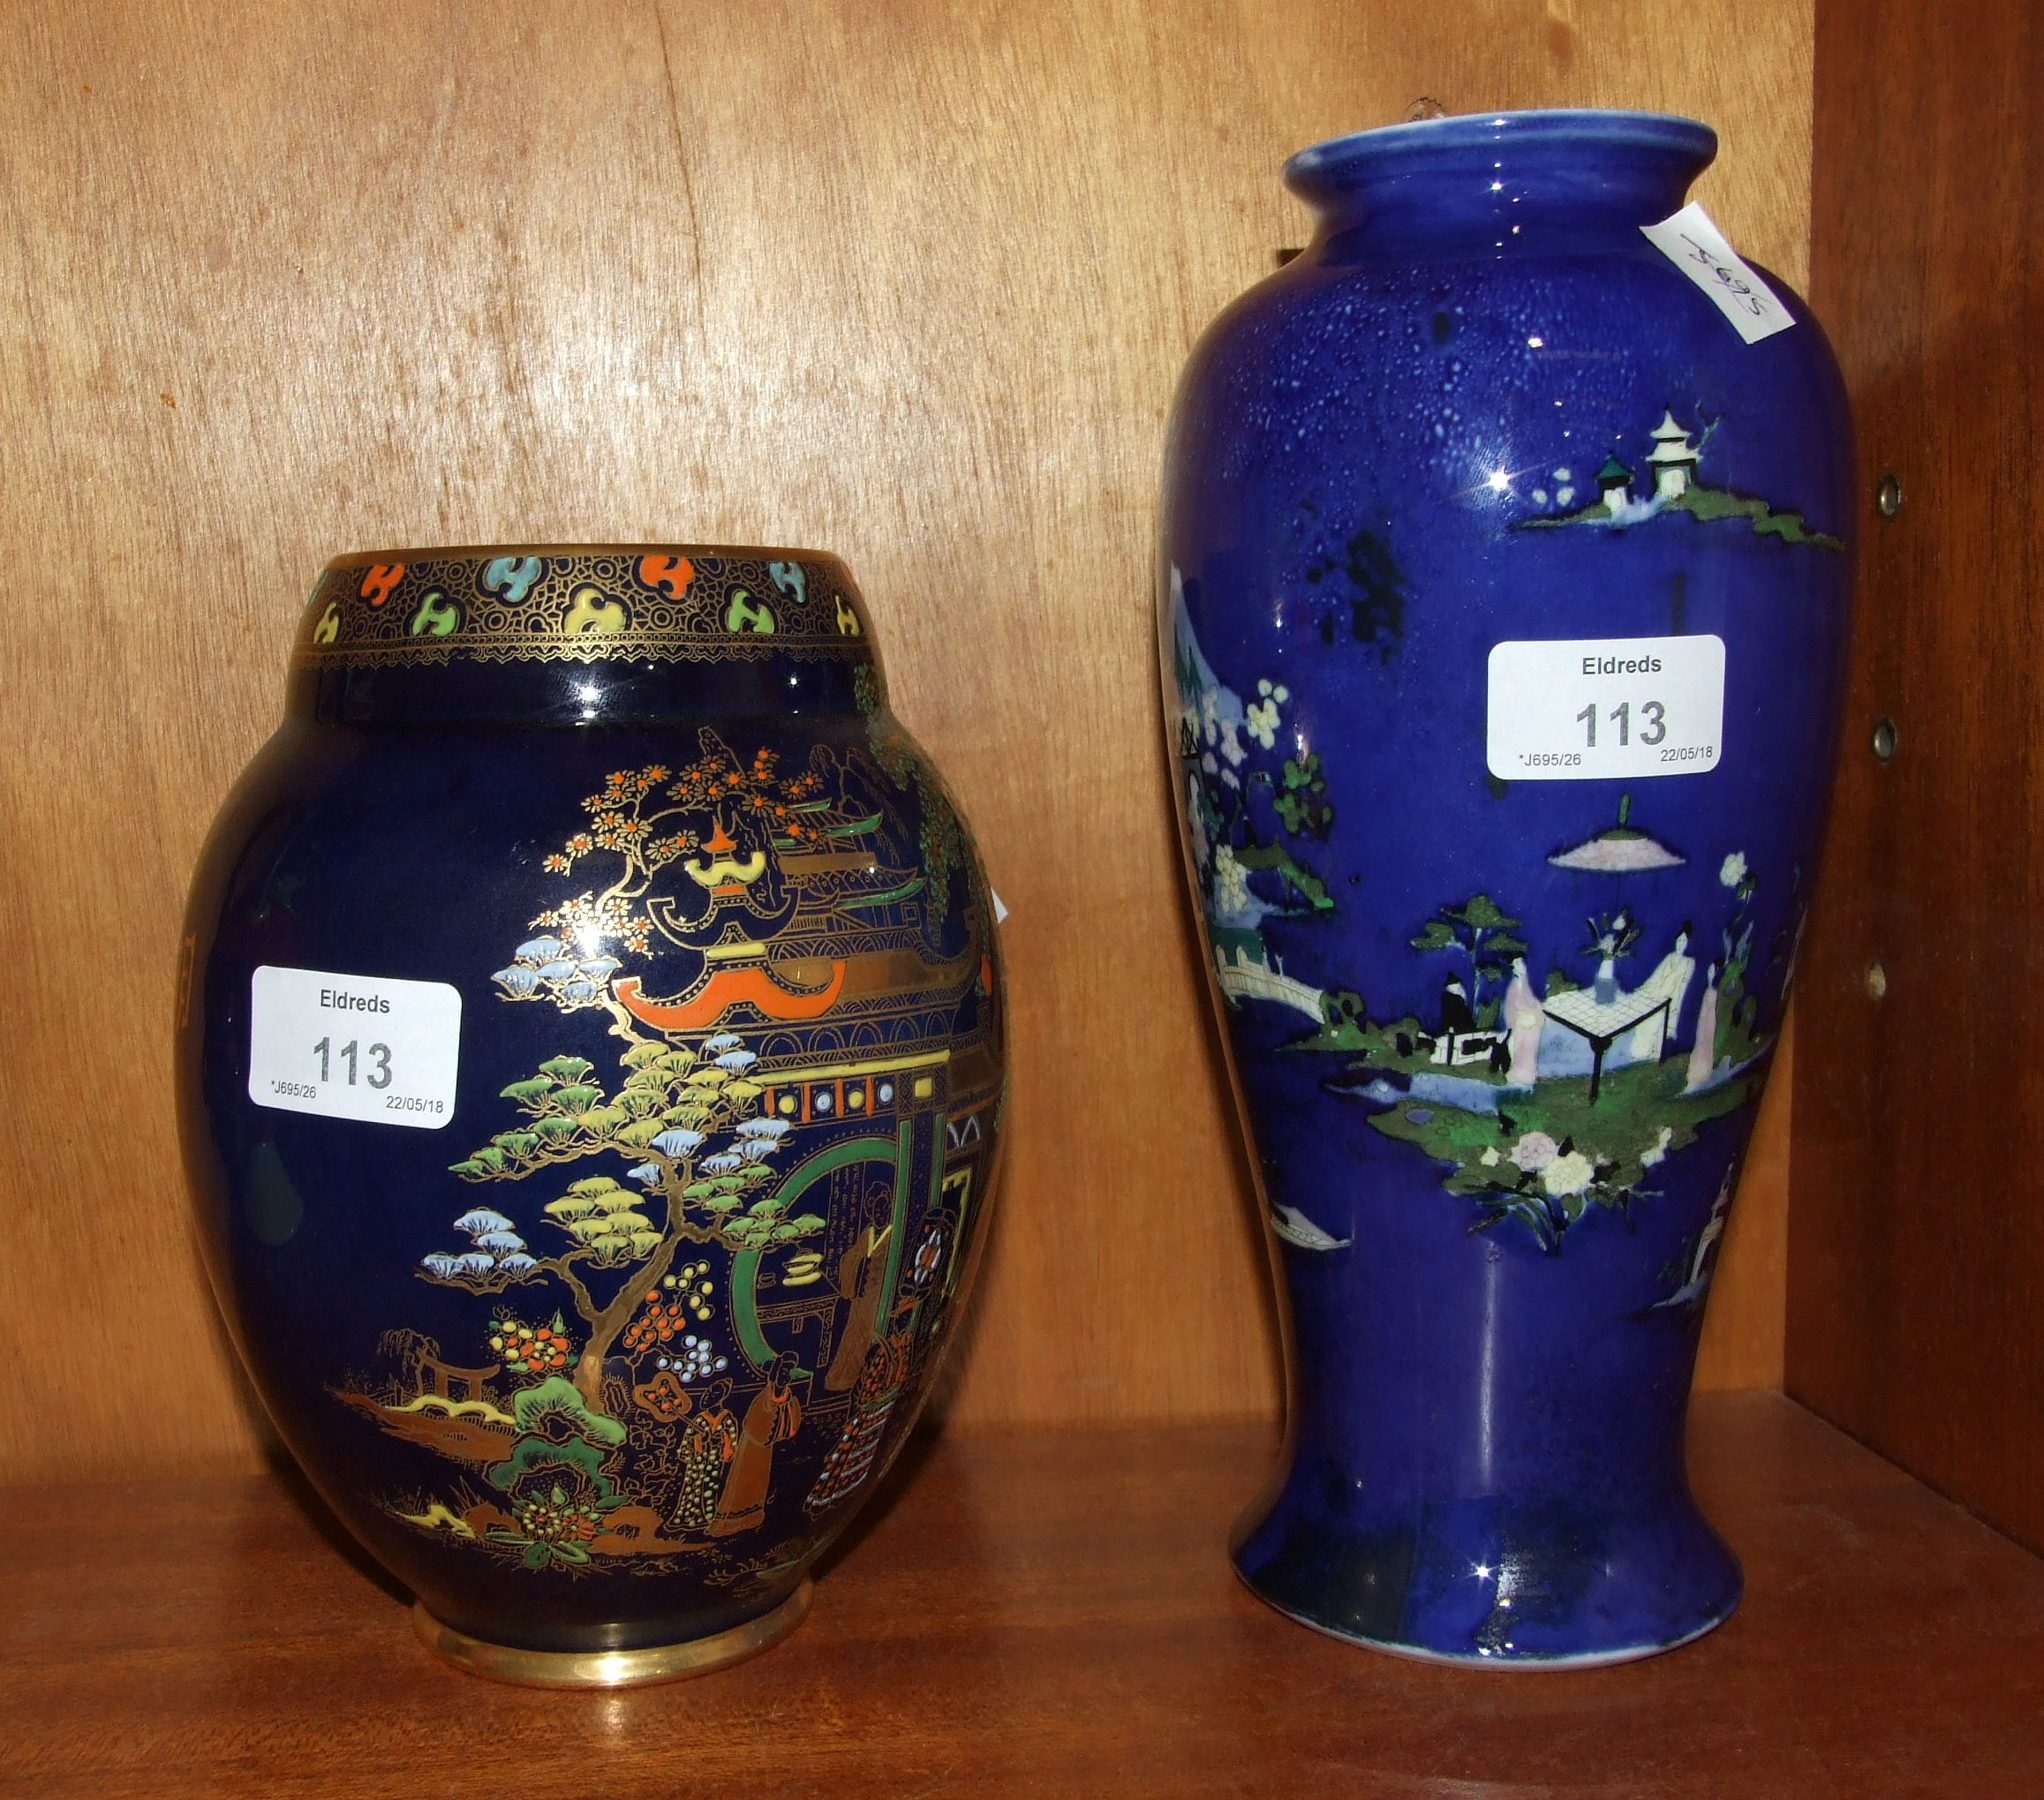 Lot 113 - A Wiltshaw & Robinson Carltonware baluster shape vase decorated with pagodas and figures on a blue